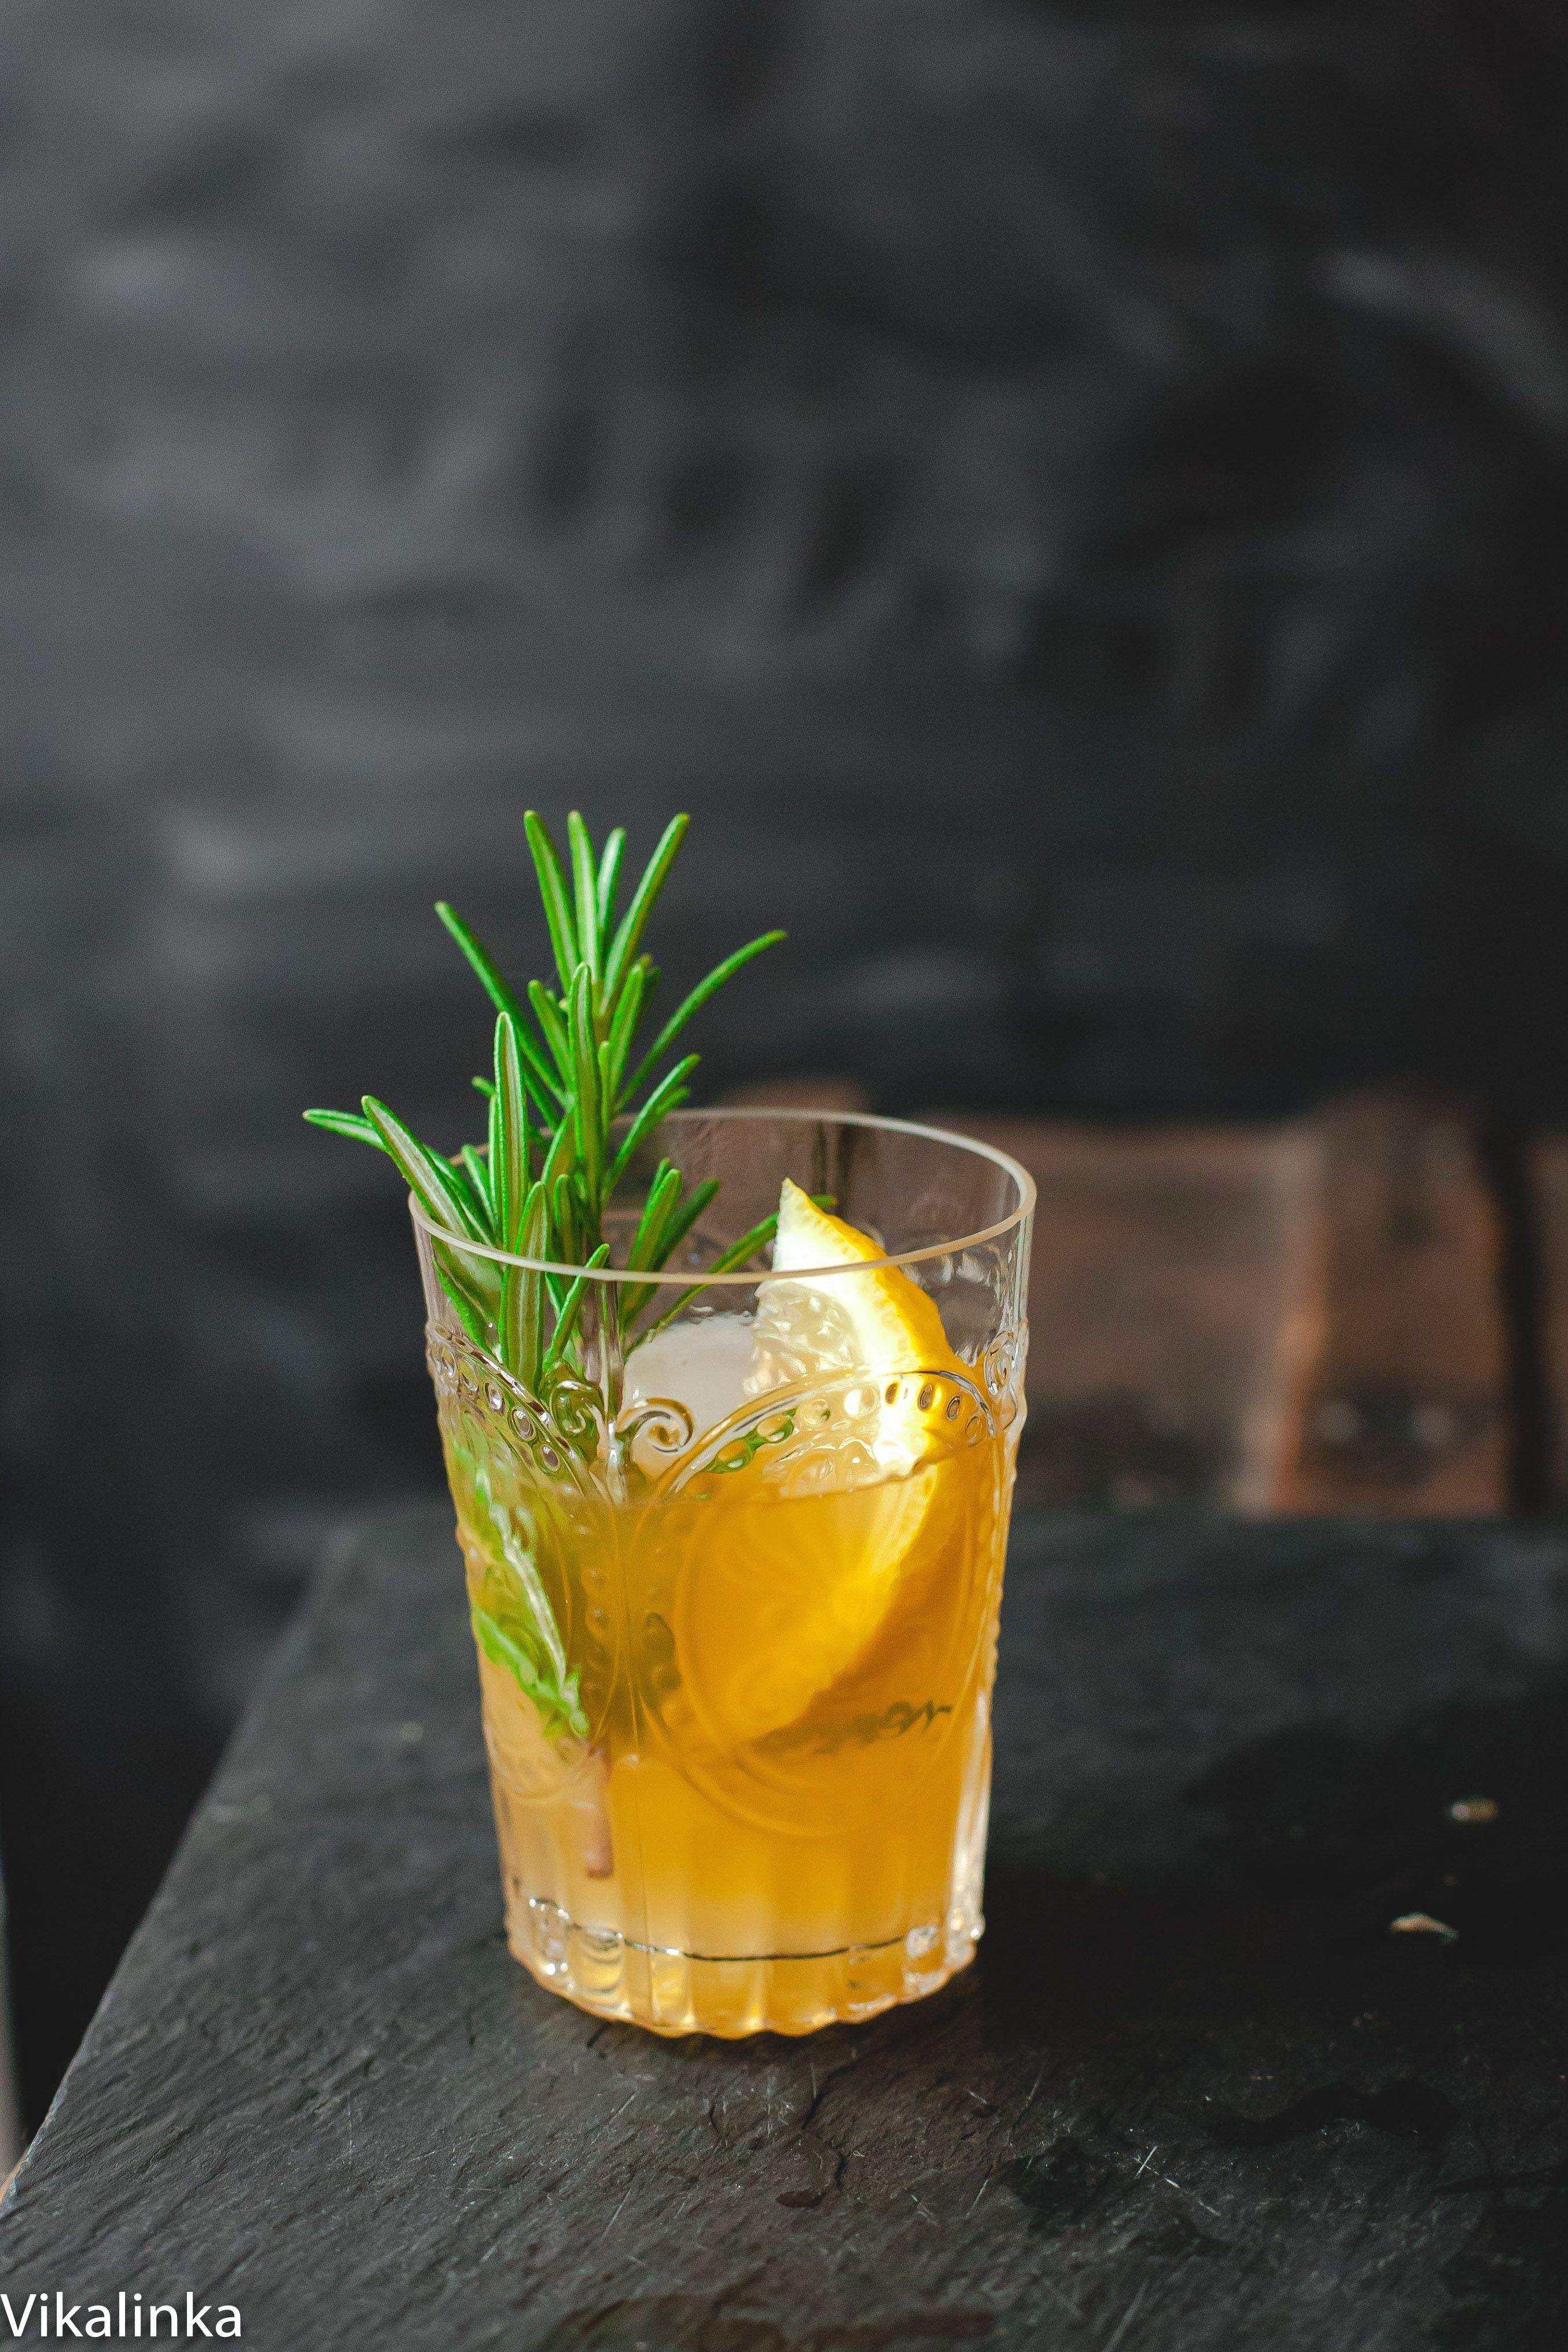 ebdb1b0a5d2f7 Cognac Sour- a perfect balance of sweet and sour infused with woodsy scent  of fresh rosemary.